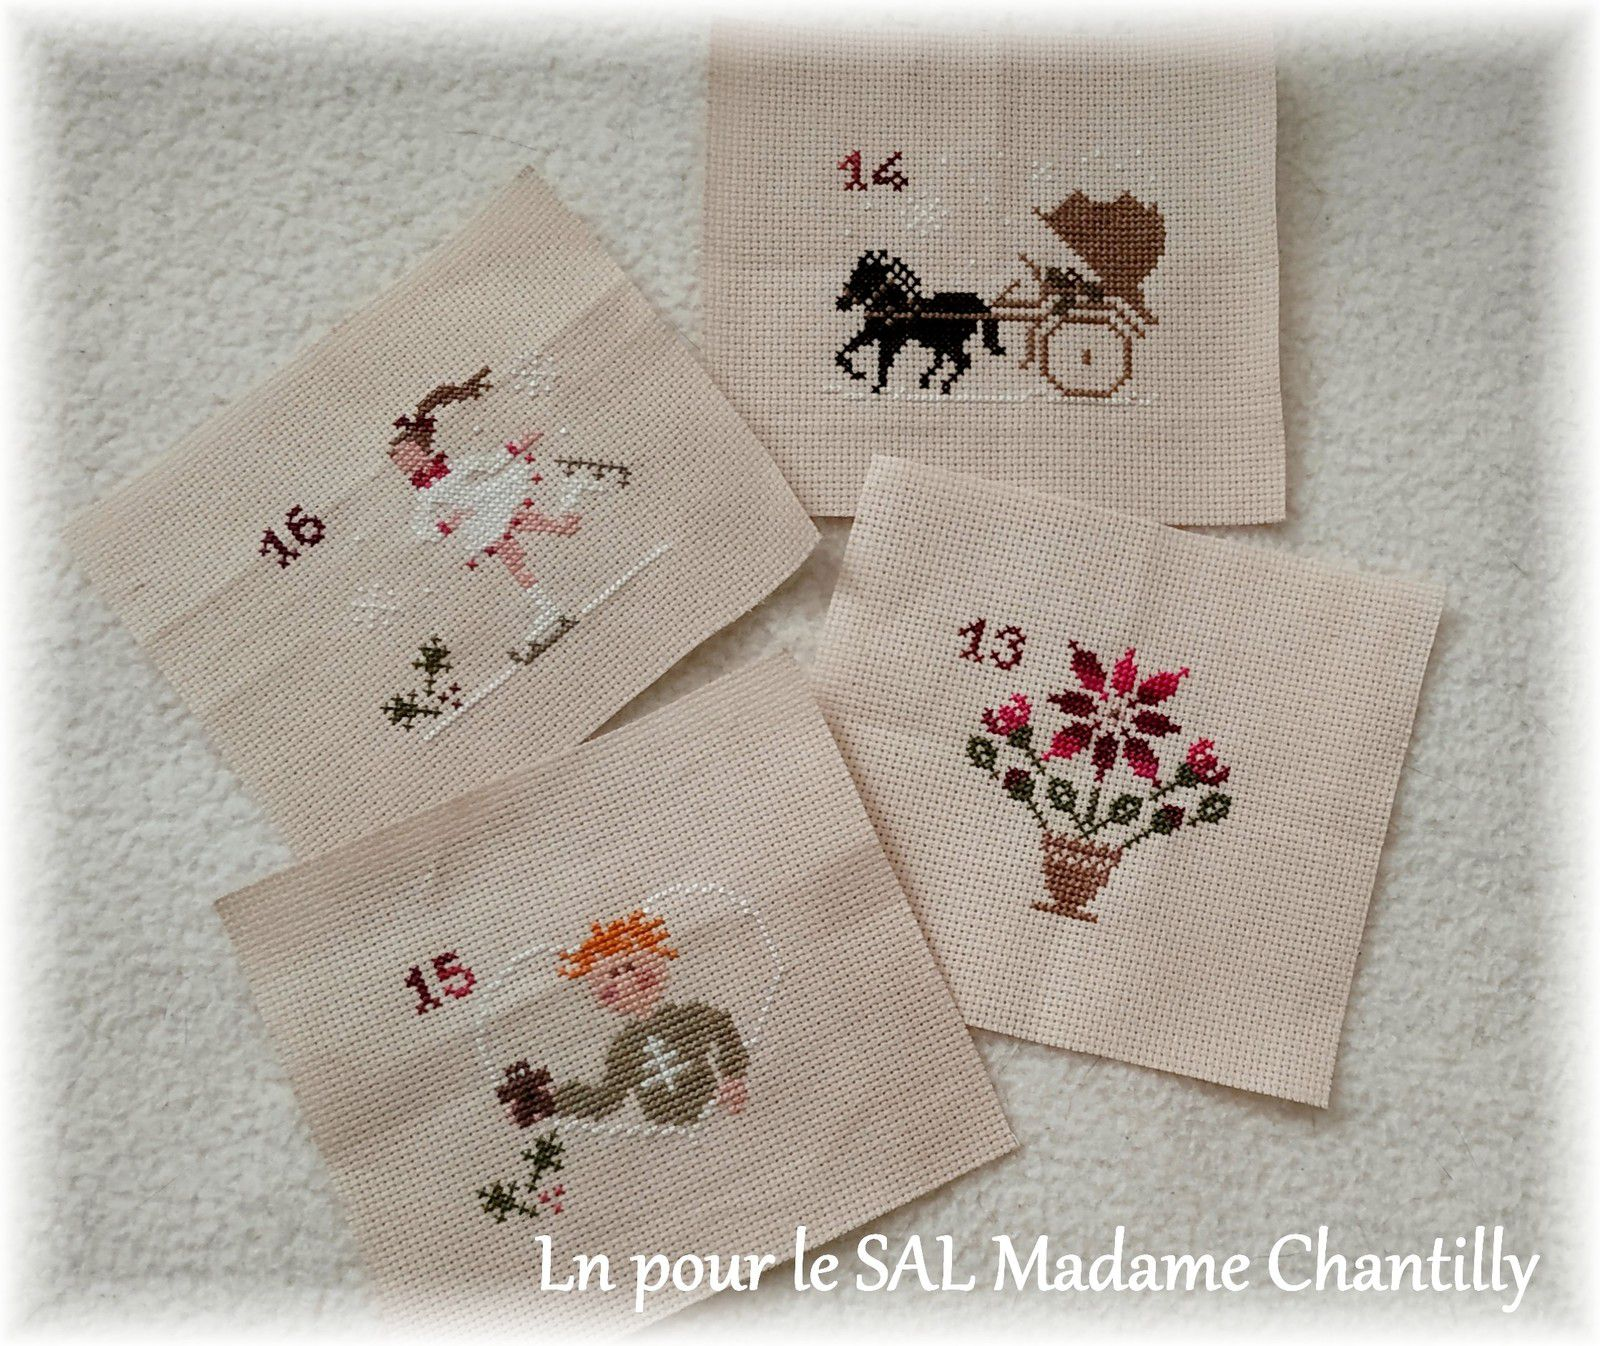 SAL Madame Chantilly, rdv de septembre...